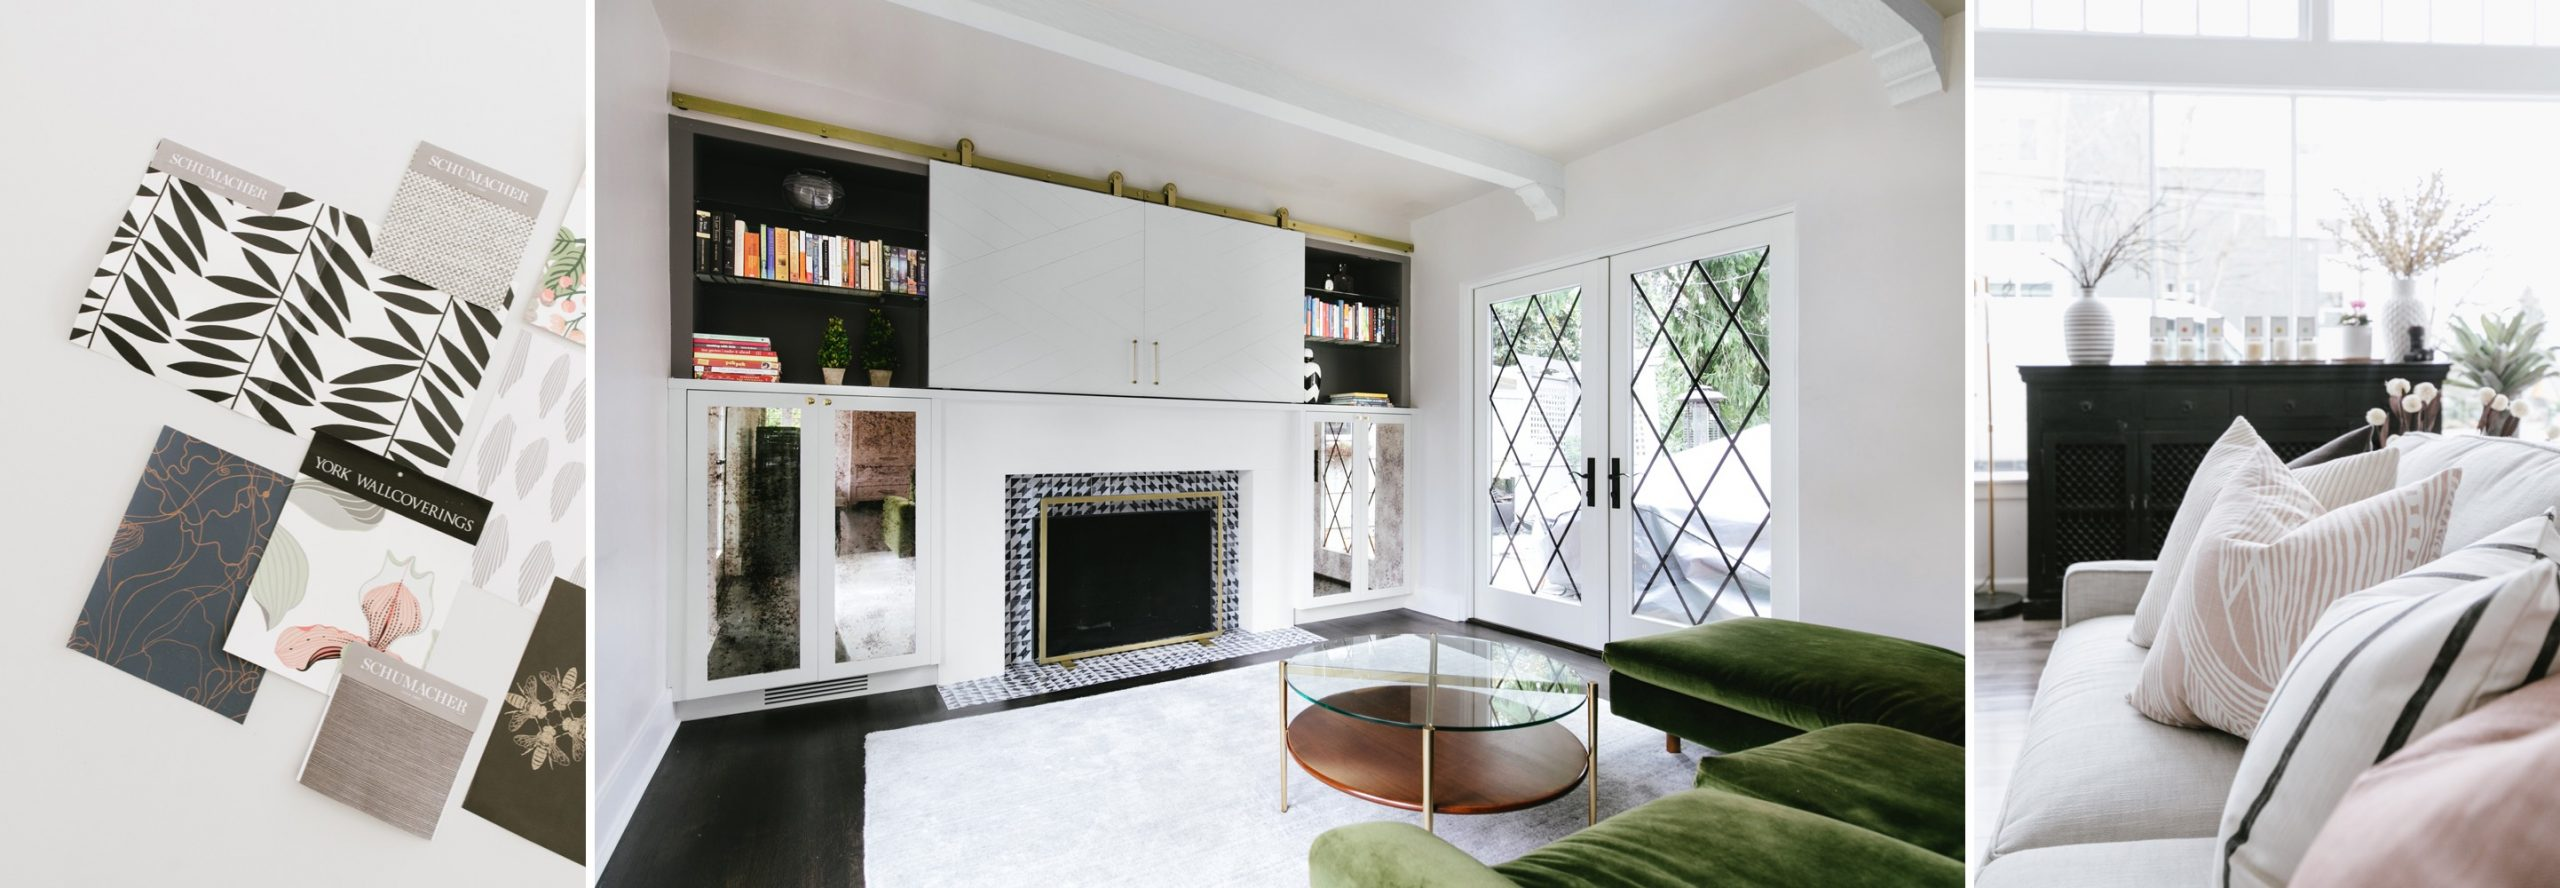 The Phinery Interior Design Blog